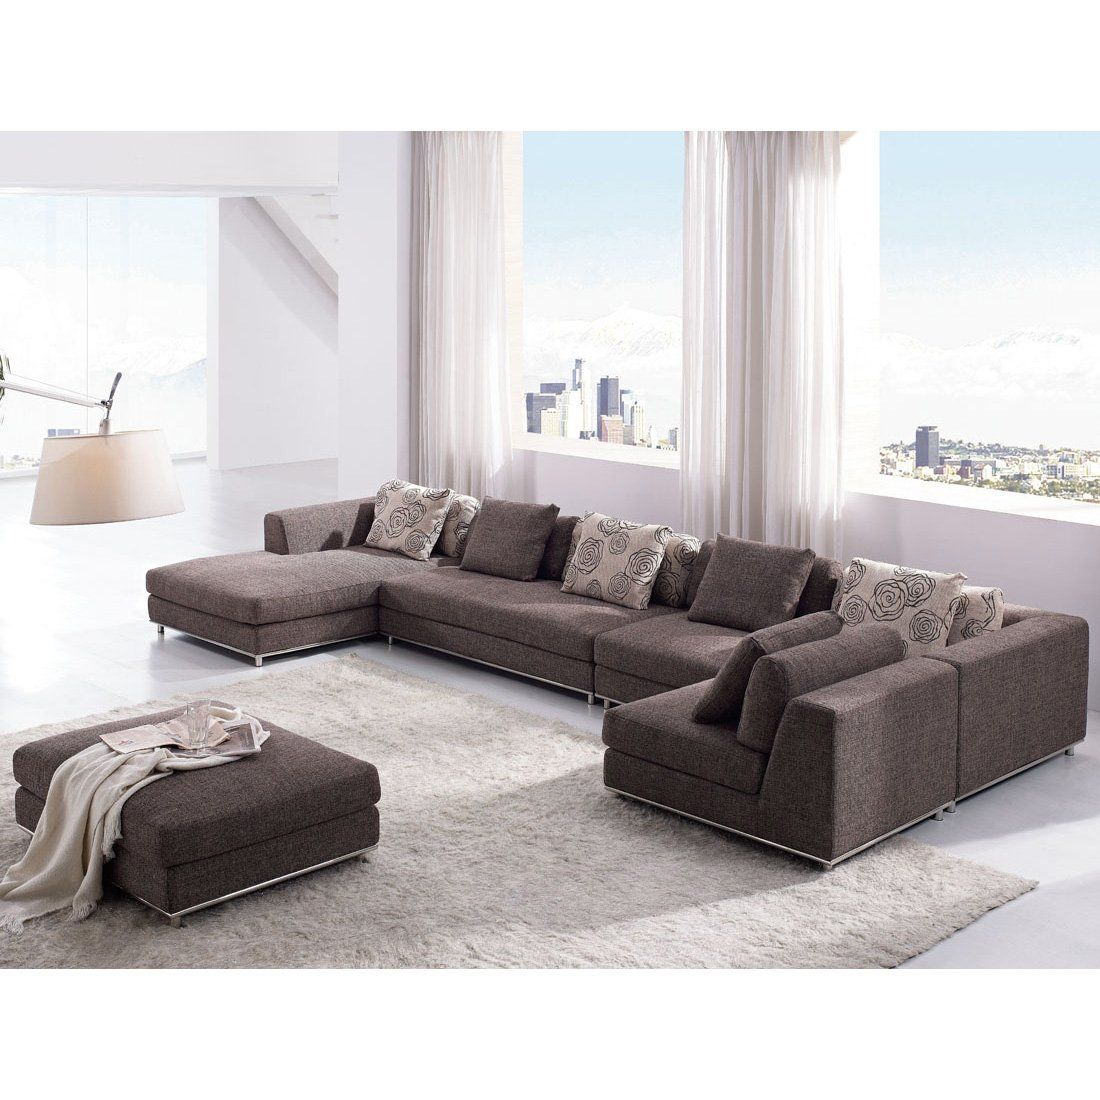 Basement Couch Possibility Tosh Furniture Contemporary Modern Brown Fabric Sectiona Modern Sofa Sectional Modern Sofa Living Room Modern Furniture Living Room